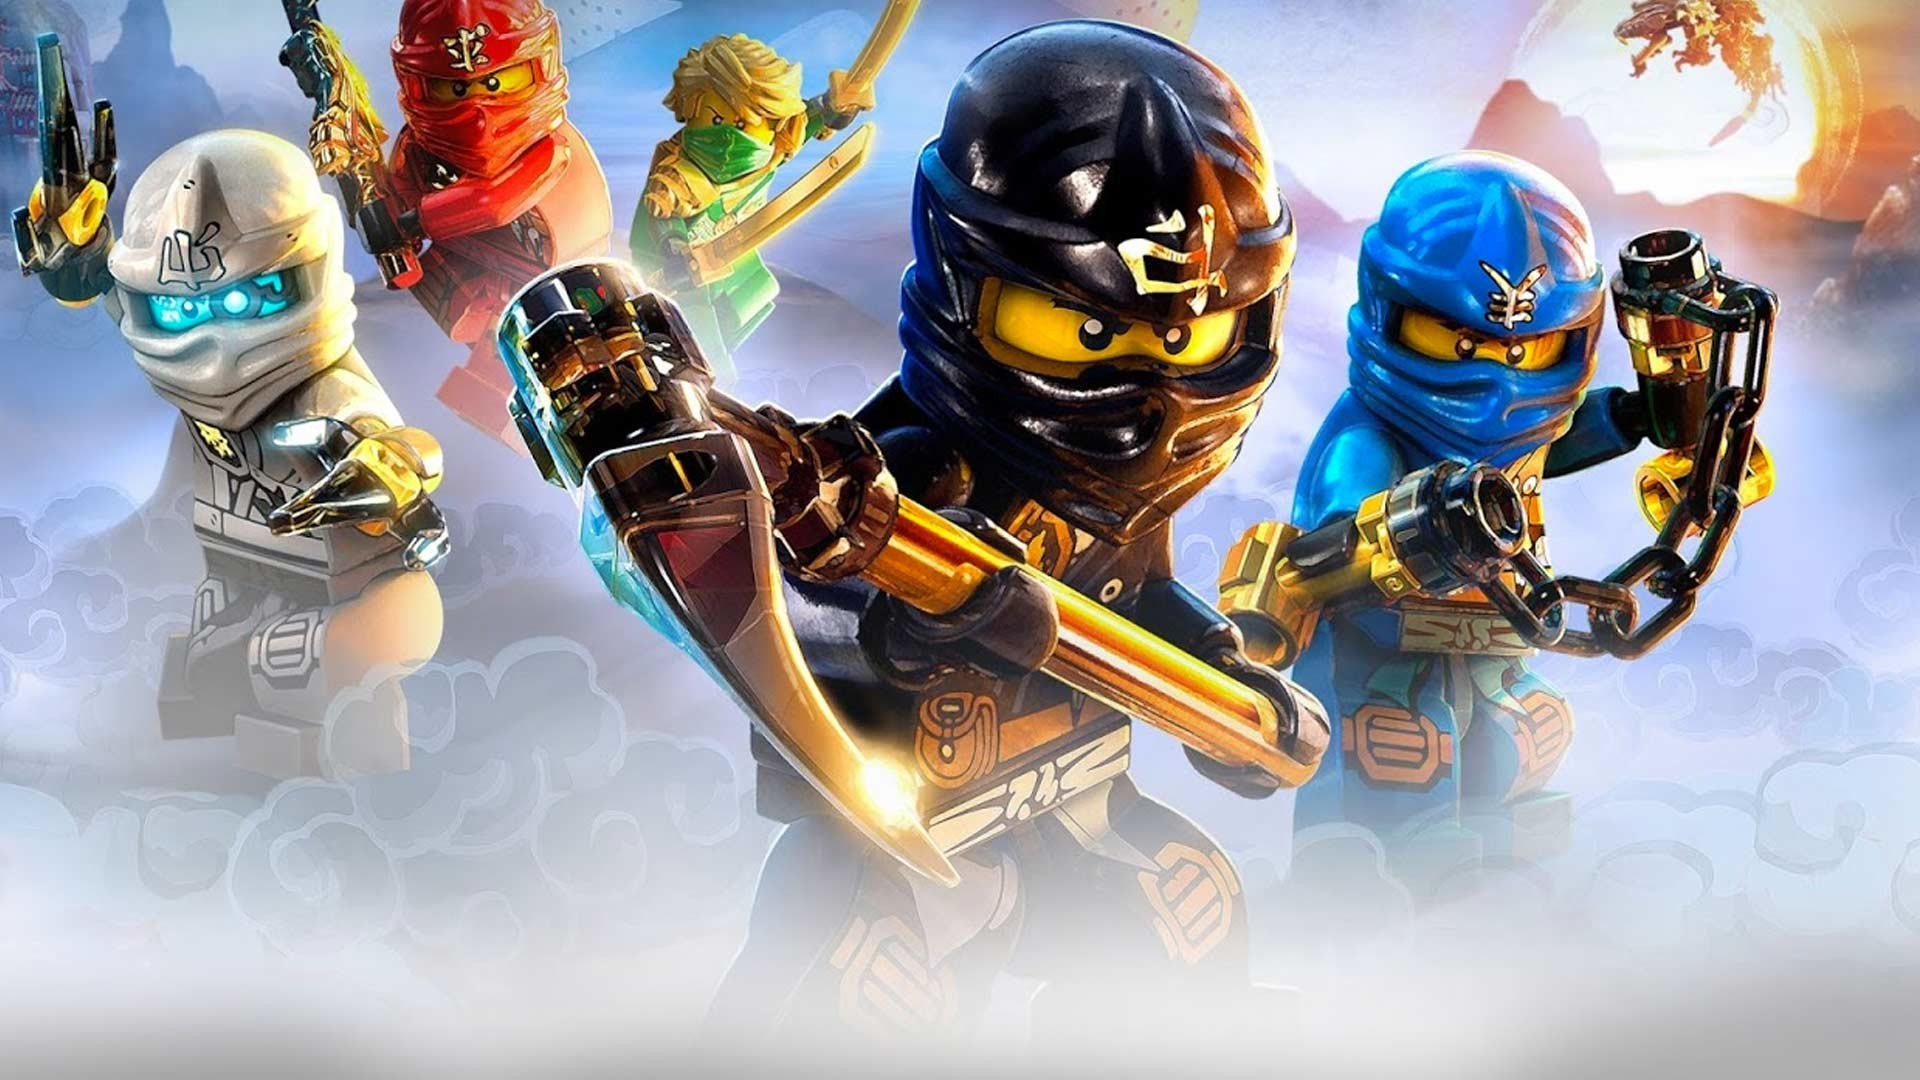 Ninjago hd wallpaper 71 images - Ninja ninjago ...